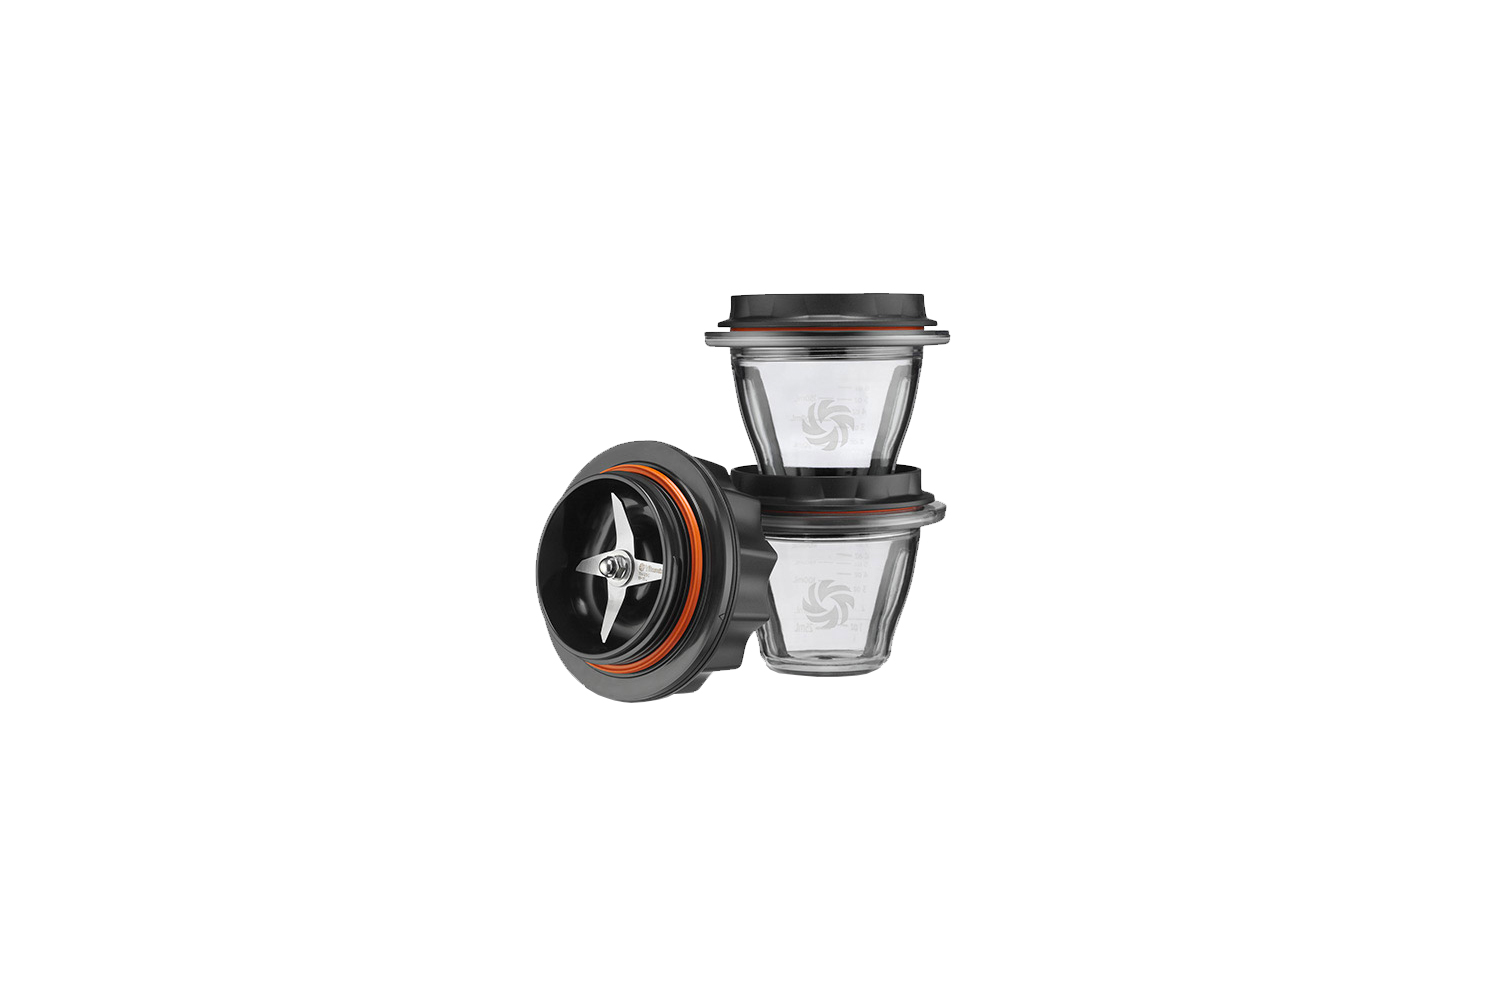 Vitamix Ascent Series Blending Bowls - 3 Piece Starter Kit